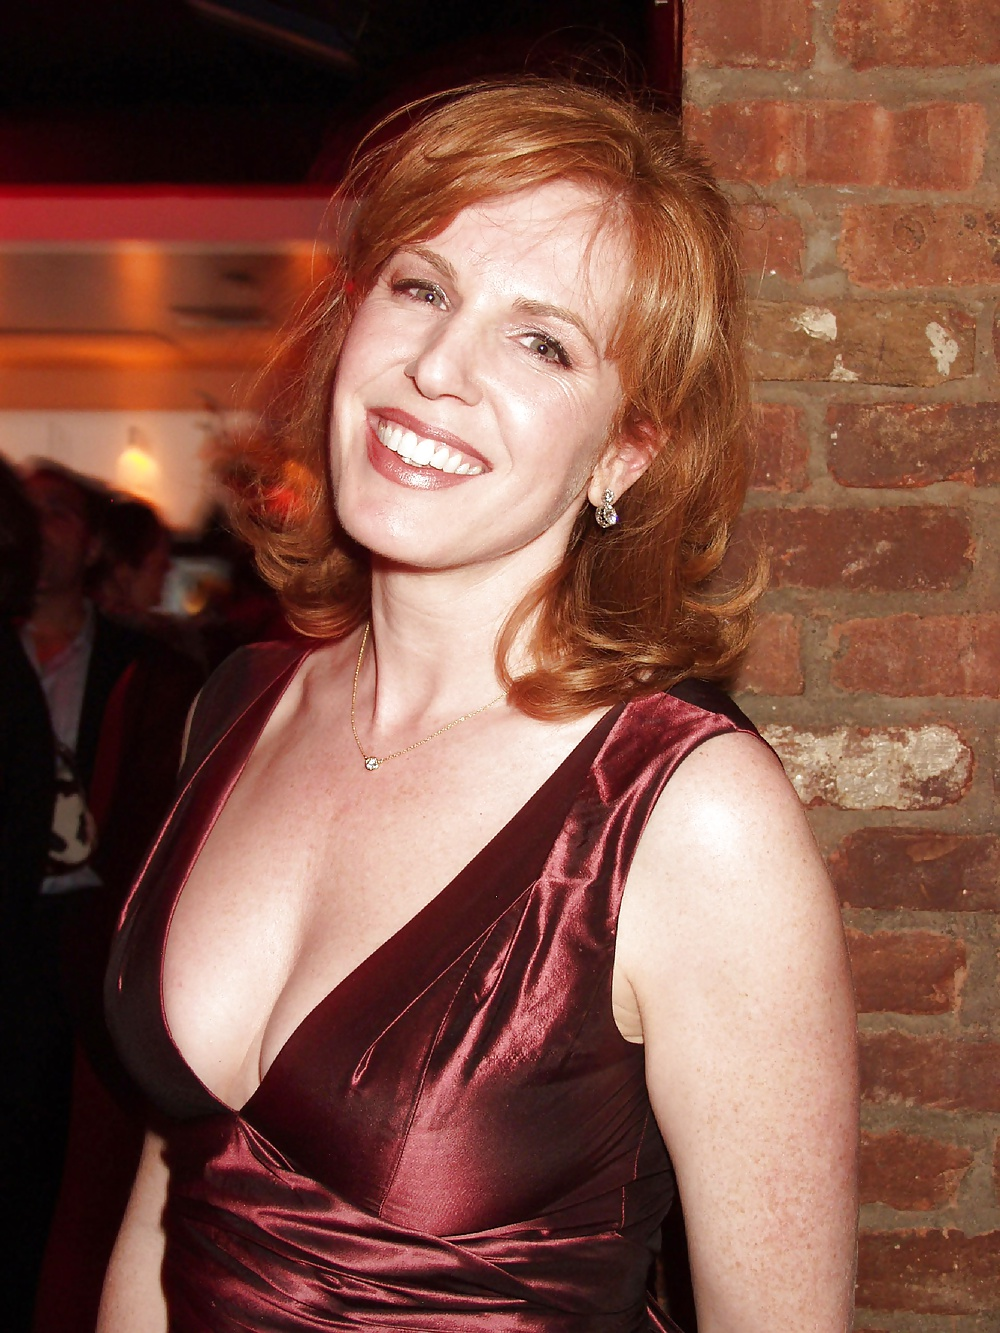 Liz claman sex video — 12